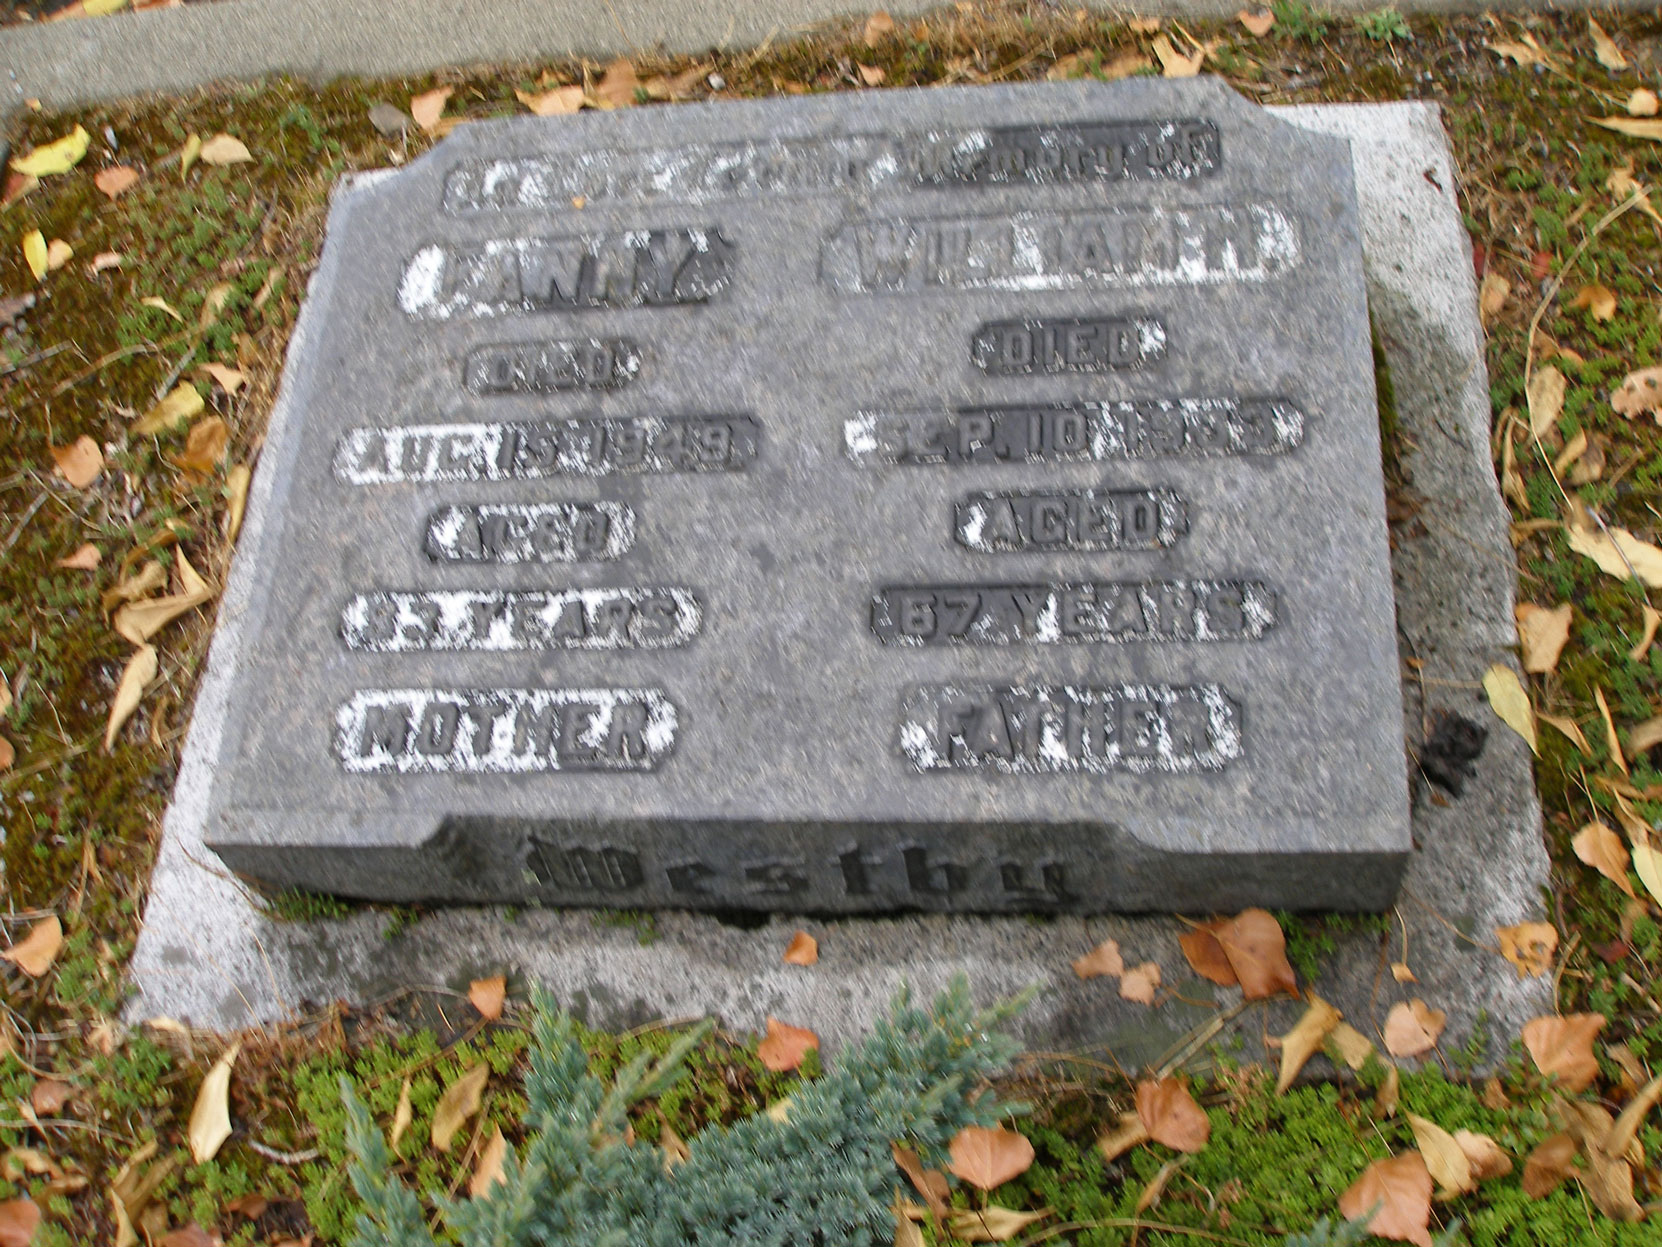 William Henry Westby grave stone, St. Luke's Anglican Cemetery, Saanich, B.C. (photo by author)